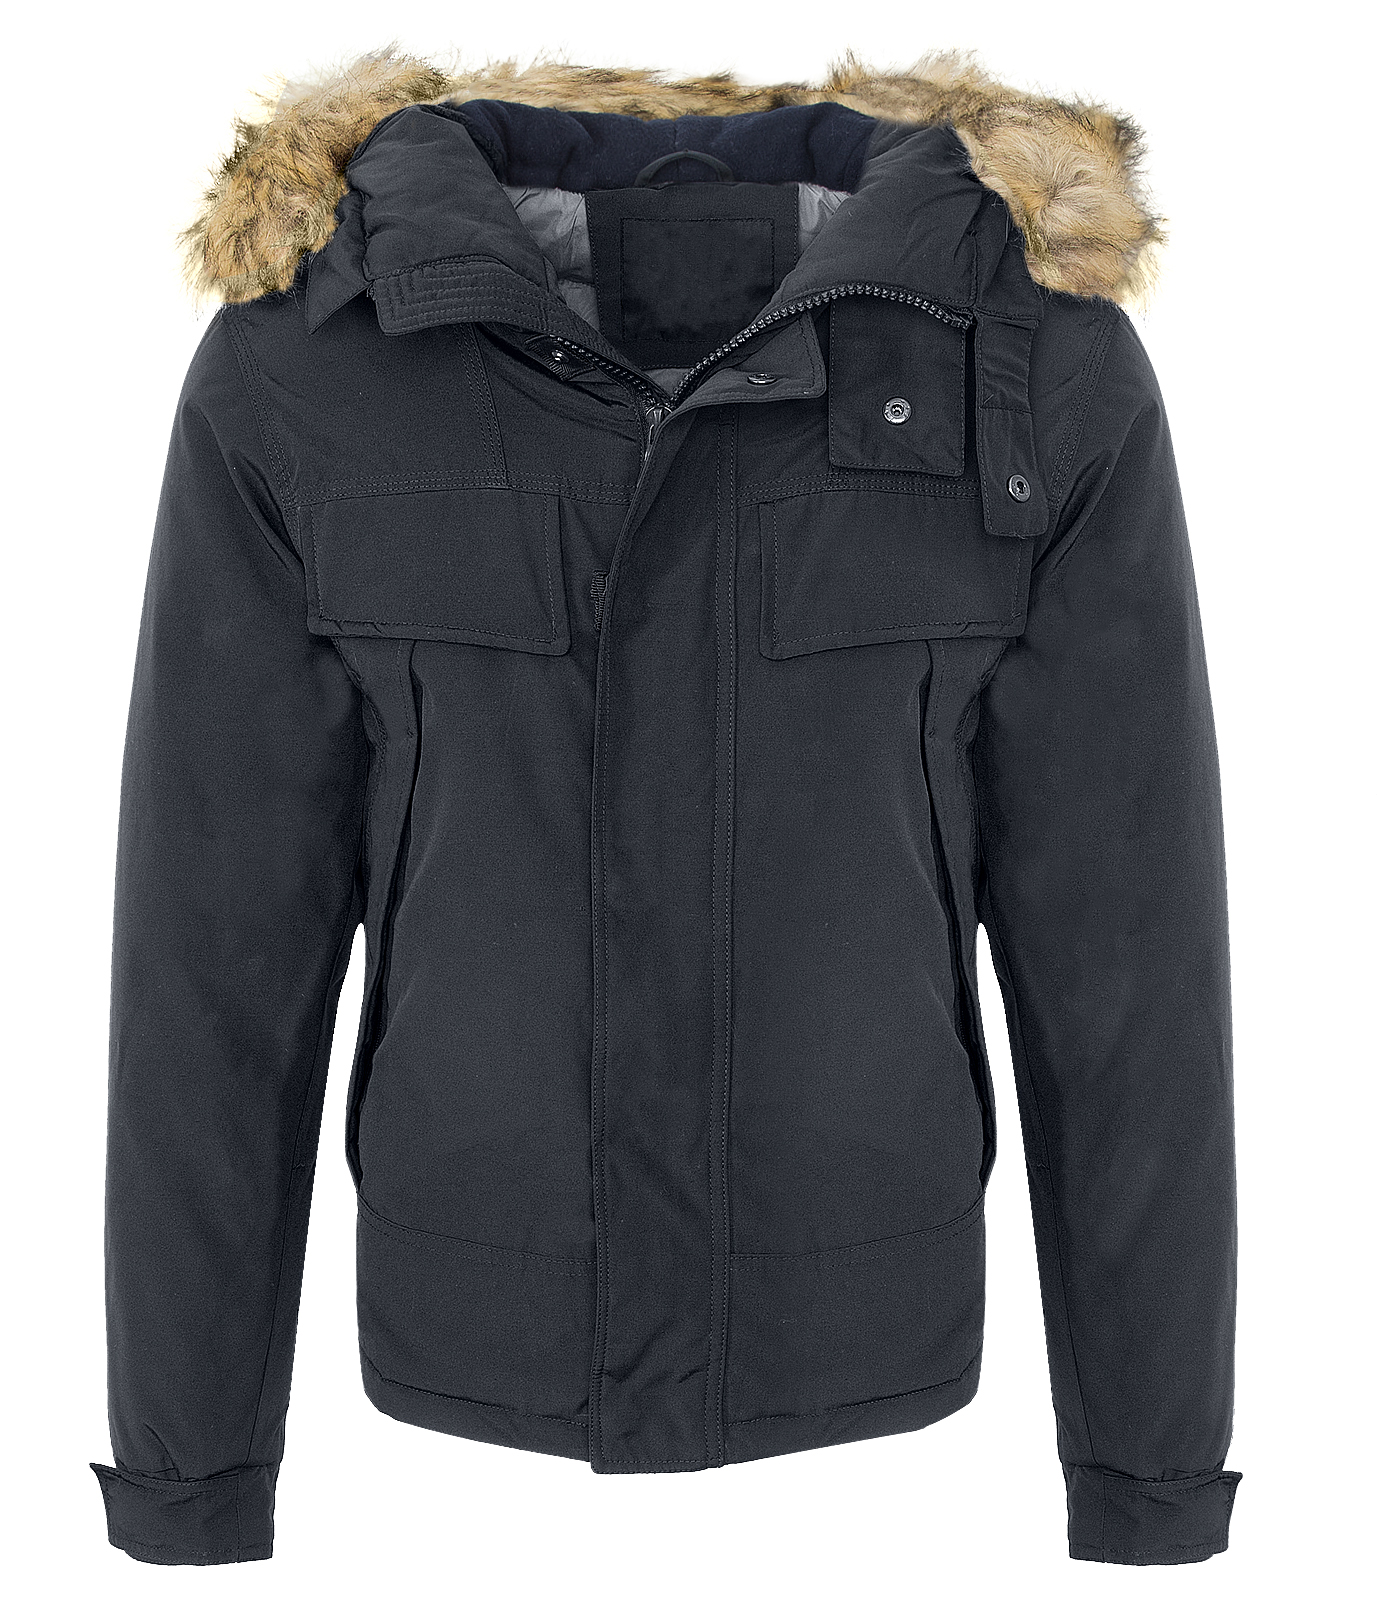 winterjacke herren outdoor jacke parka herrenjacke kapuze fellkragen h 131 s xxl ebay. Black Bedroom Furniture Sets. Home Design Ideas